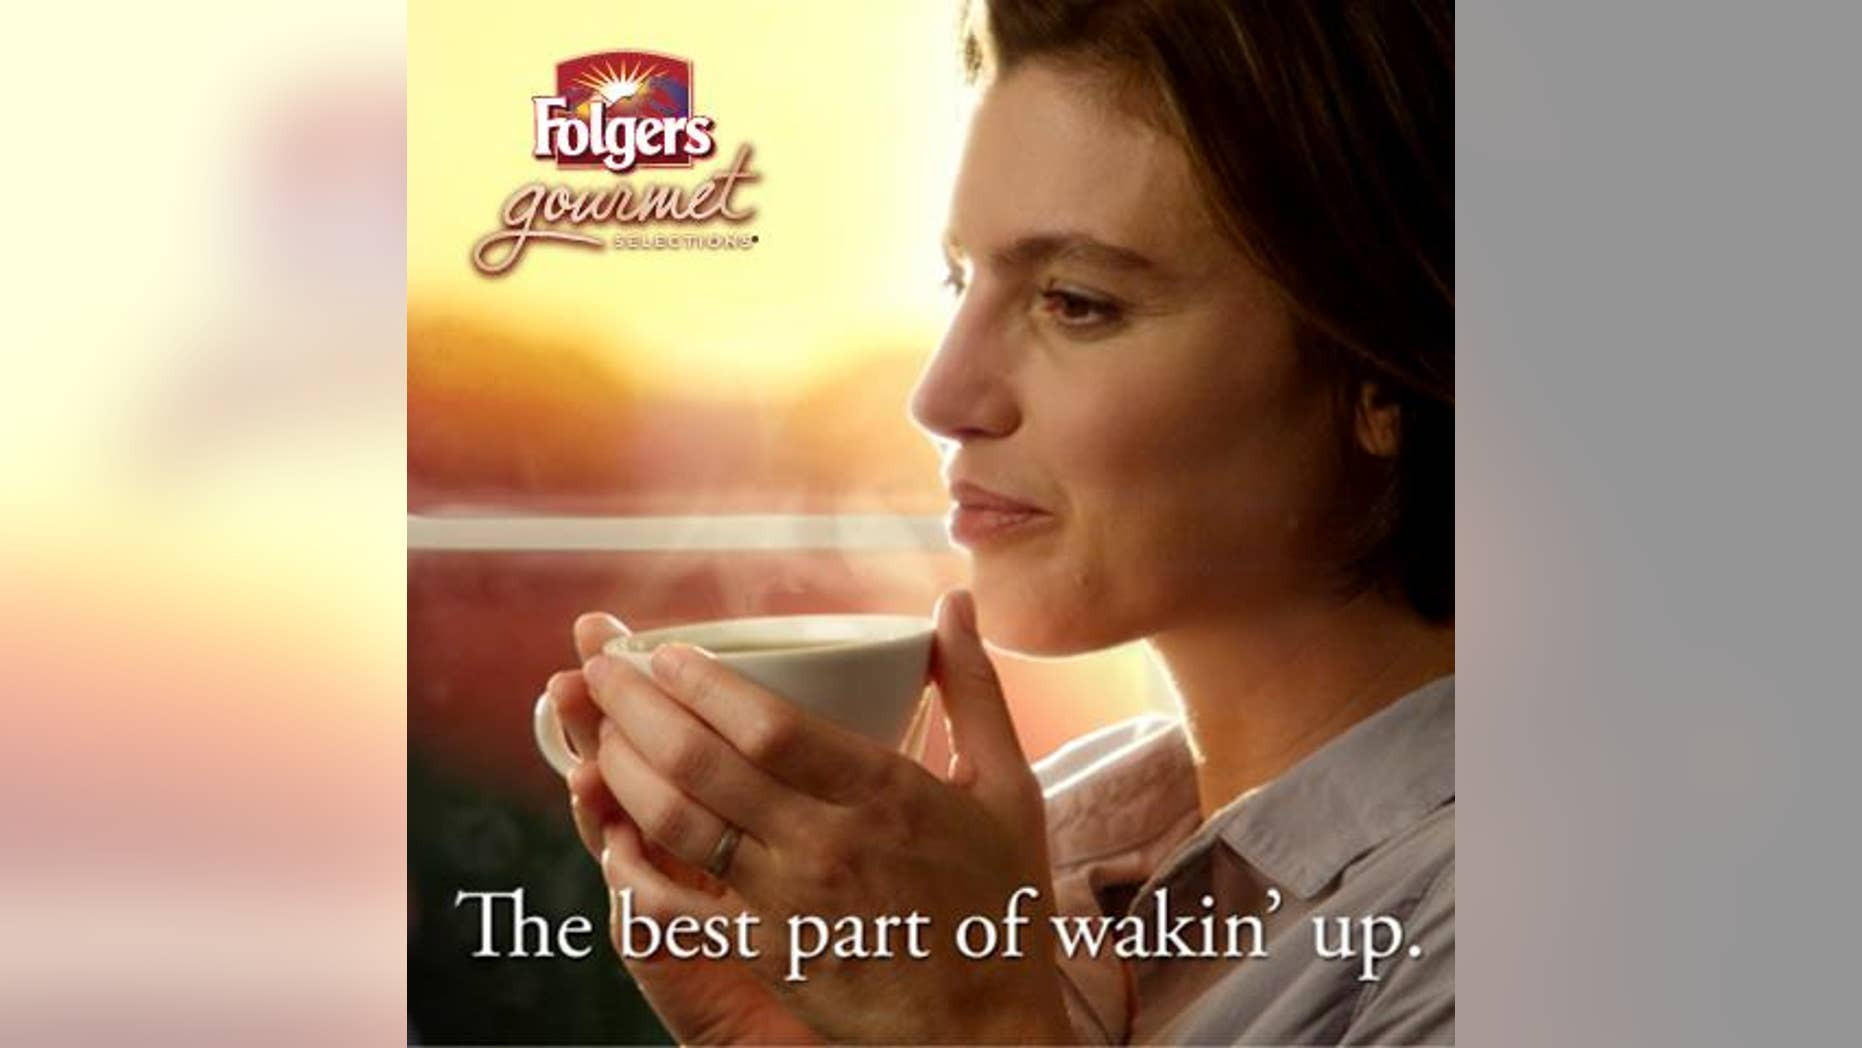 Anyone with a TV or radio remembers that Folgers is the best part of wakin' up.